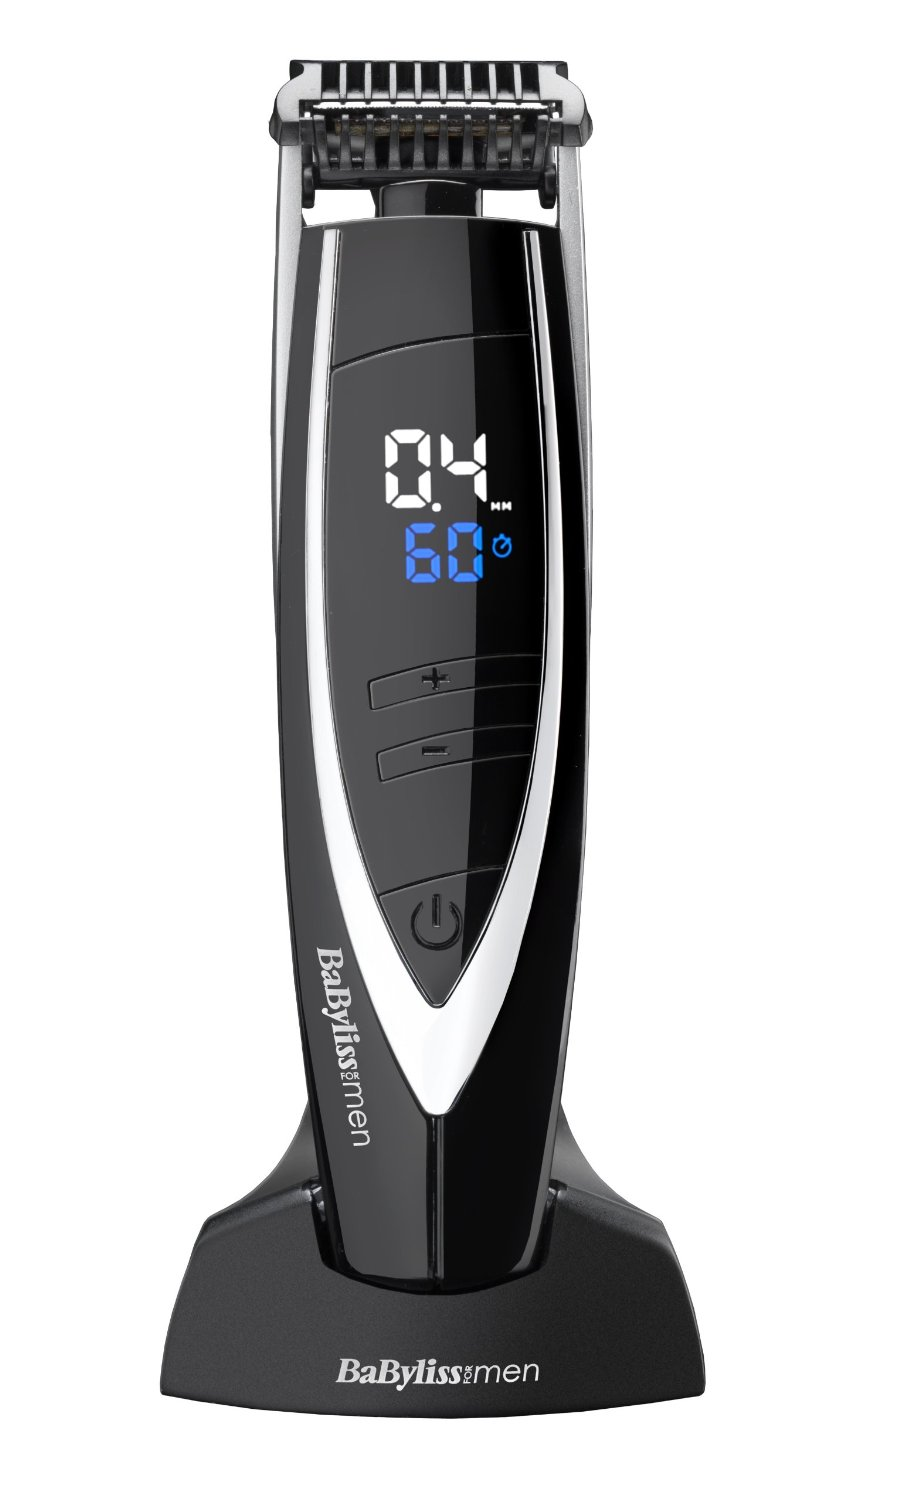 beard trimmer reviews au braun cruzer 3 in 1 trimmer review beard trimmer reviews review. Black Bedroom Furniture Sets. Home Design Ideas